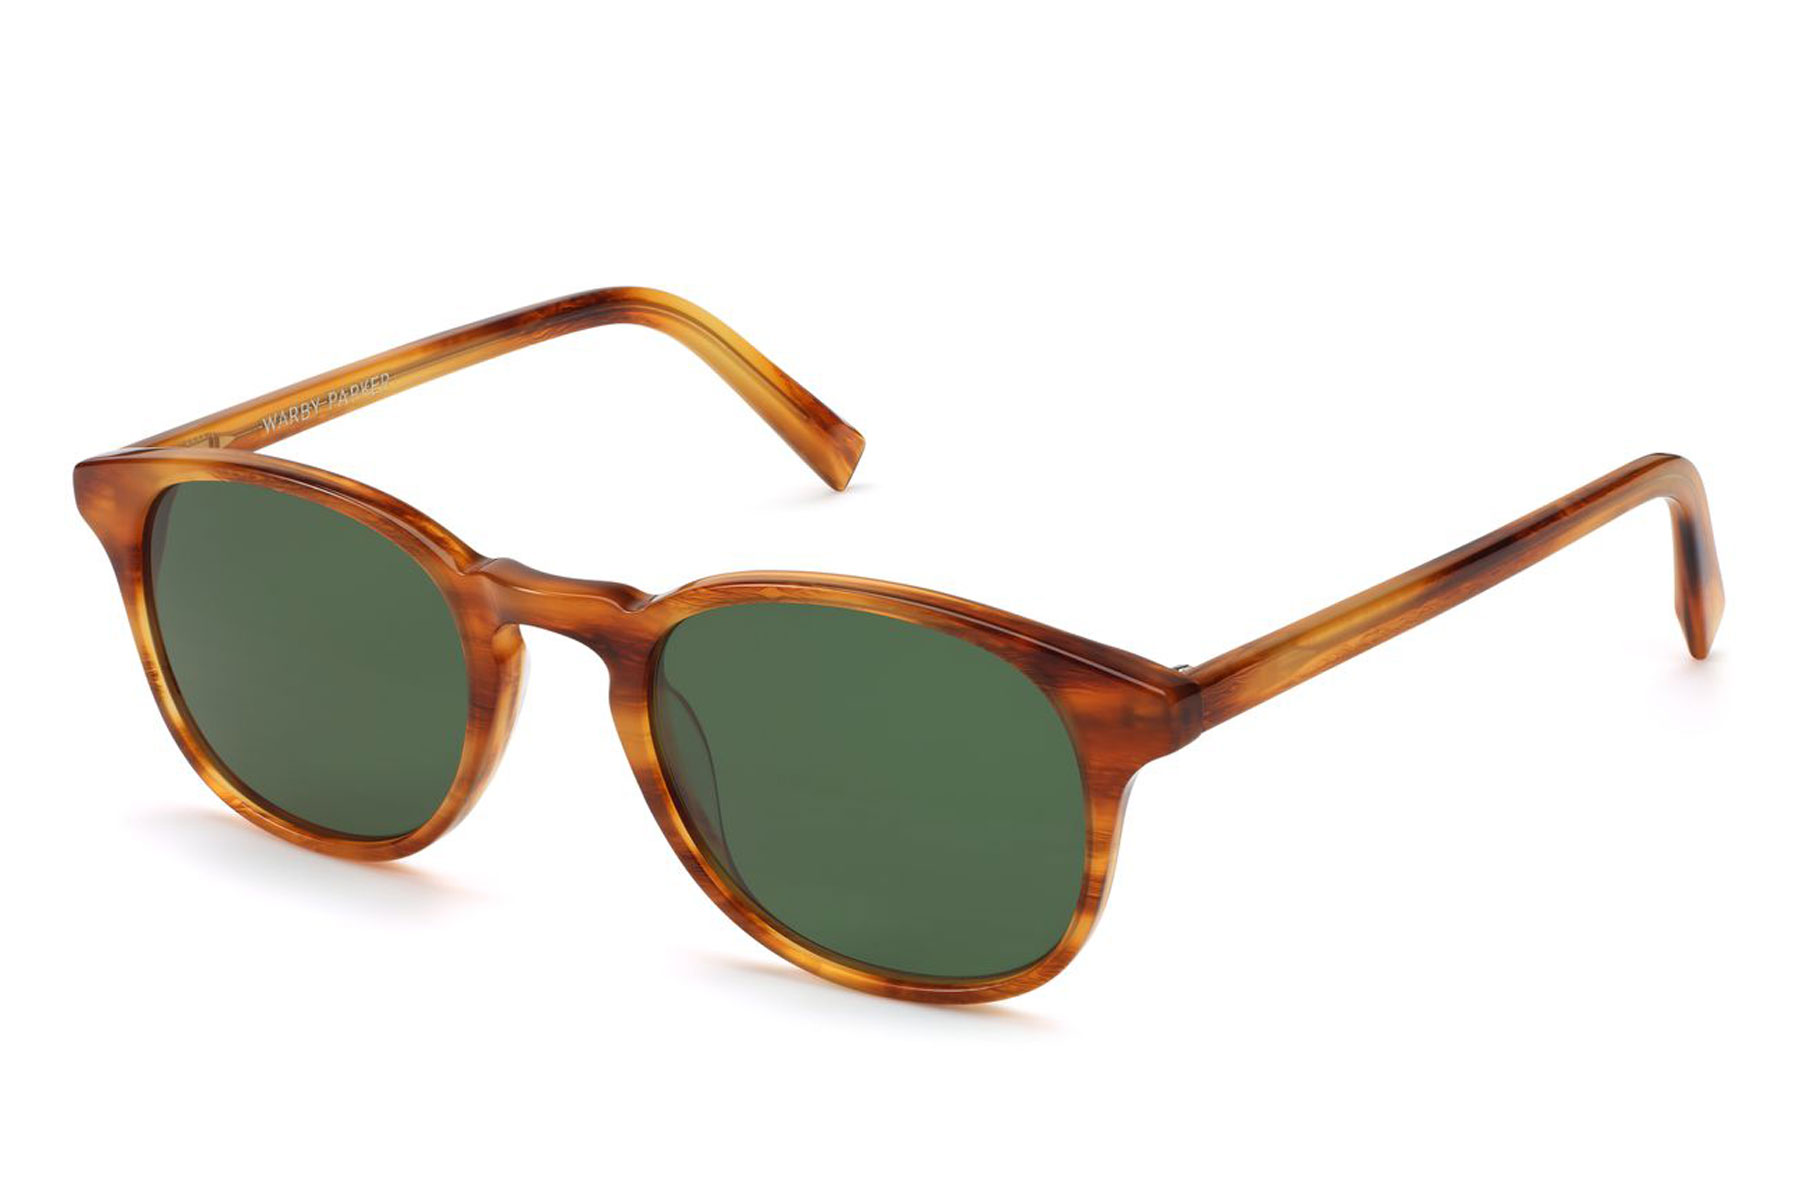 brown tortoise sunglasses with green lenses